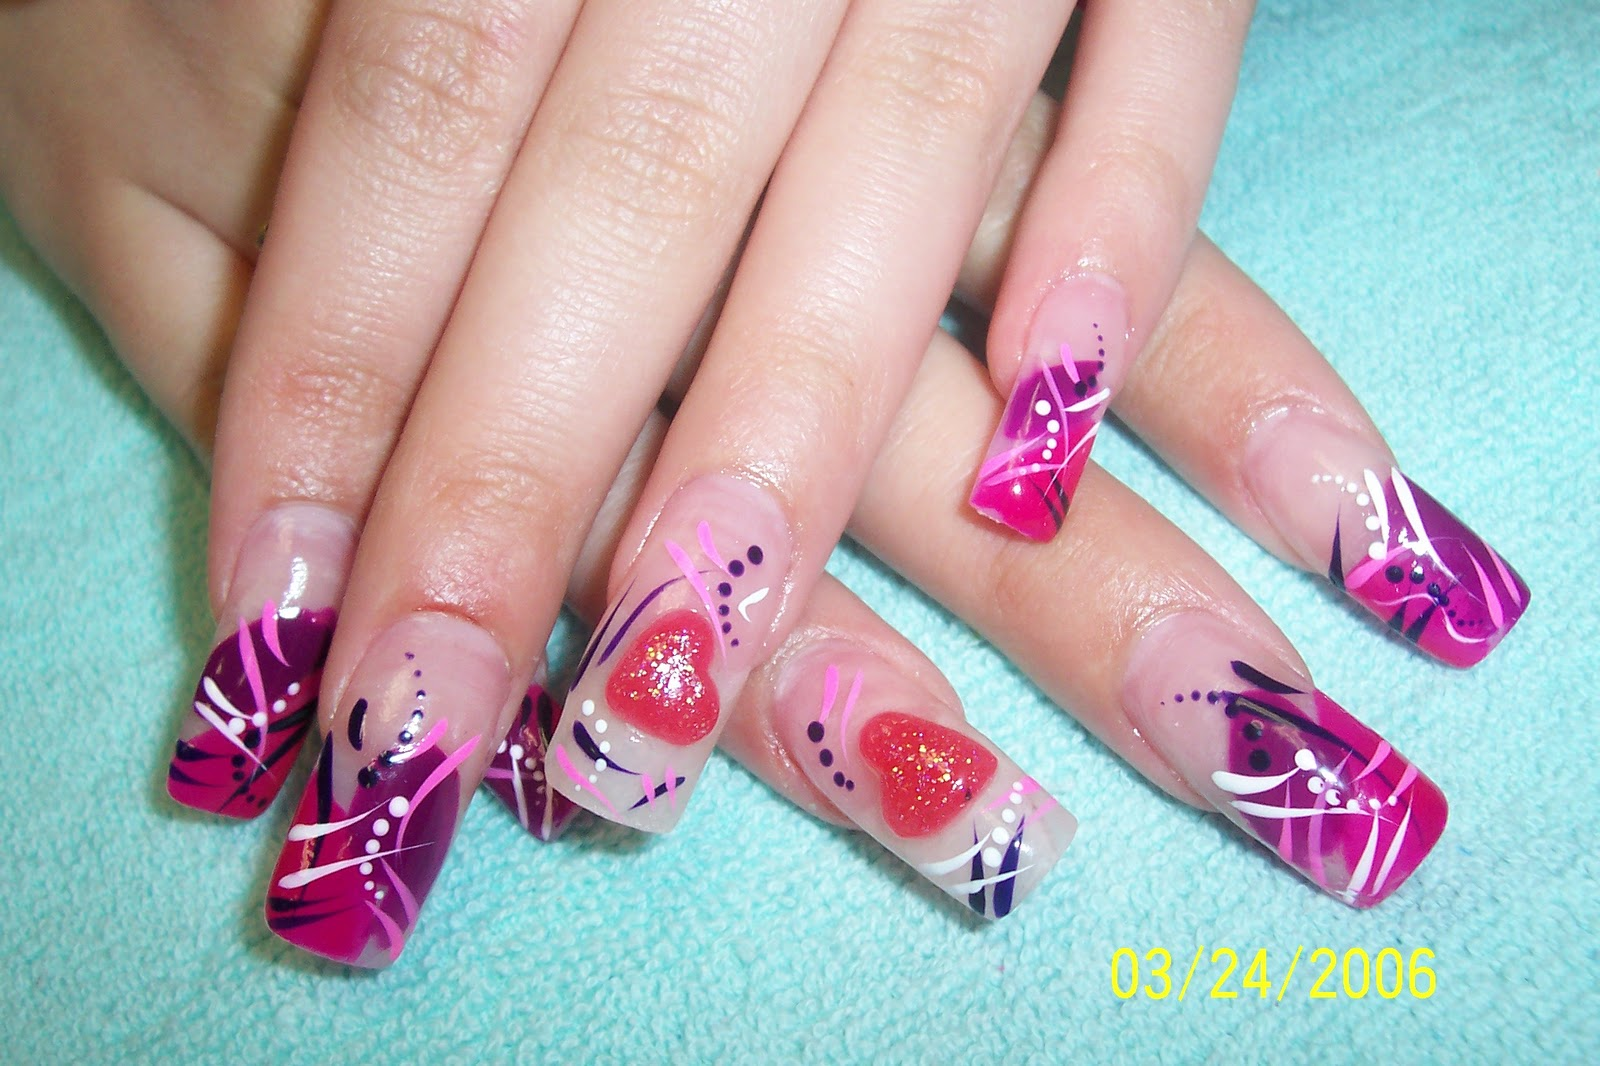 Nail Art Ideas: 45 Cute Nail Designs You Will Definitely Love